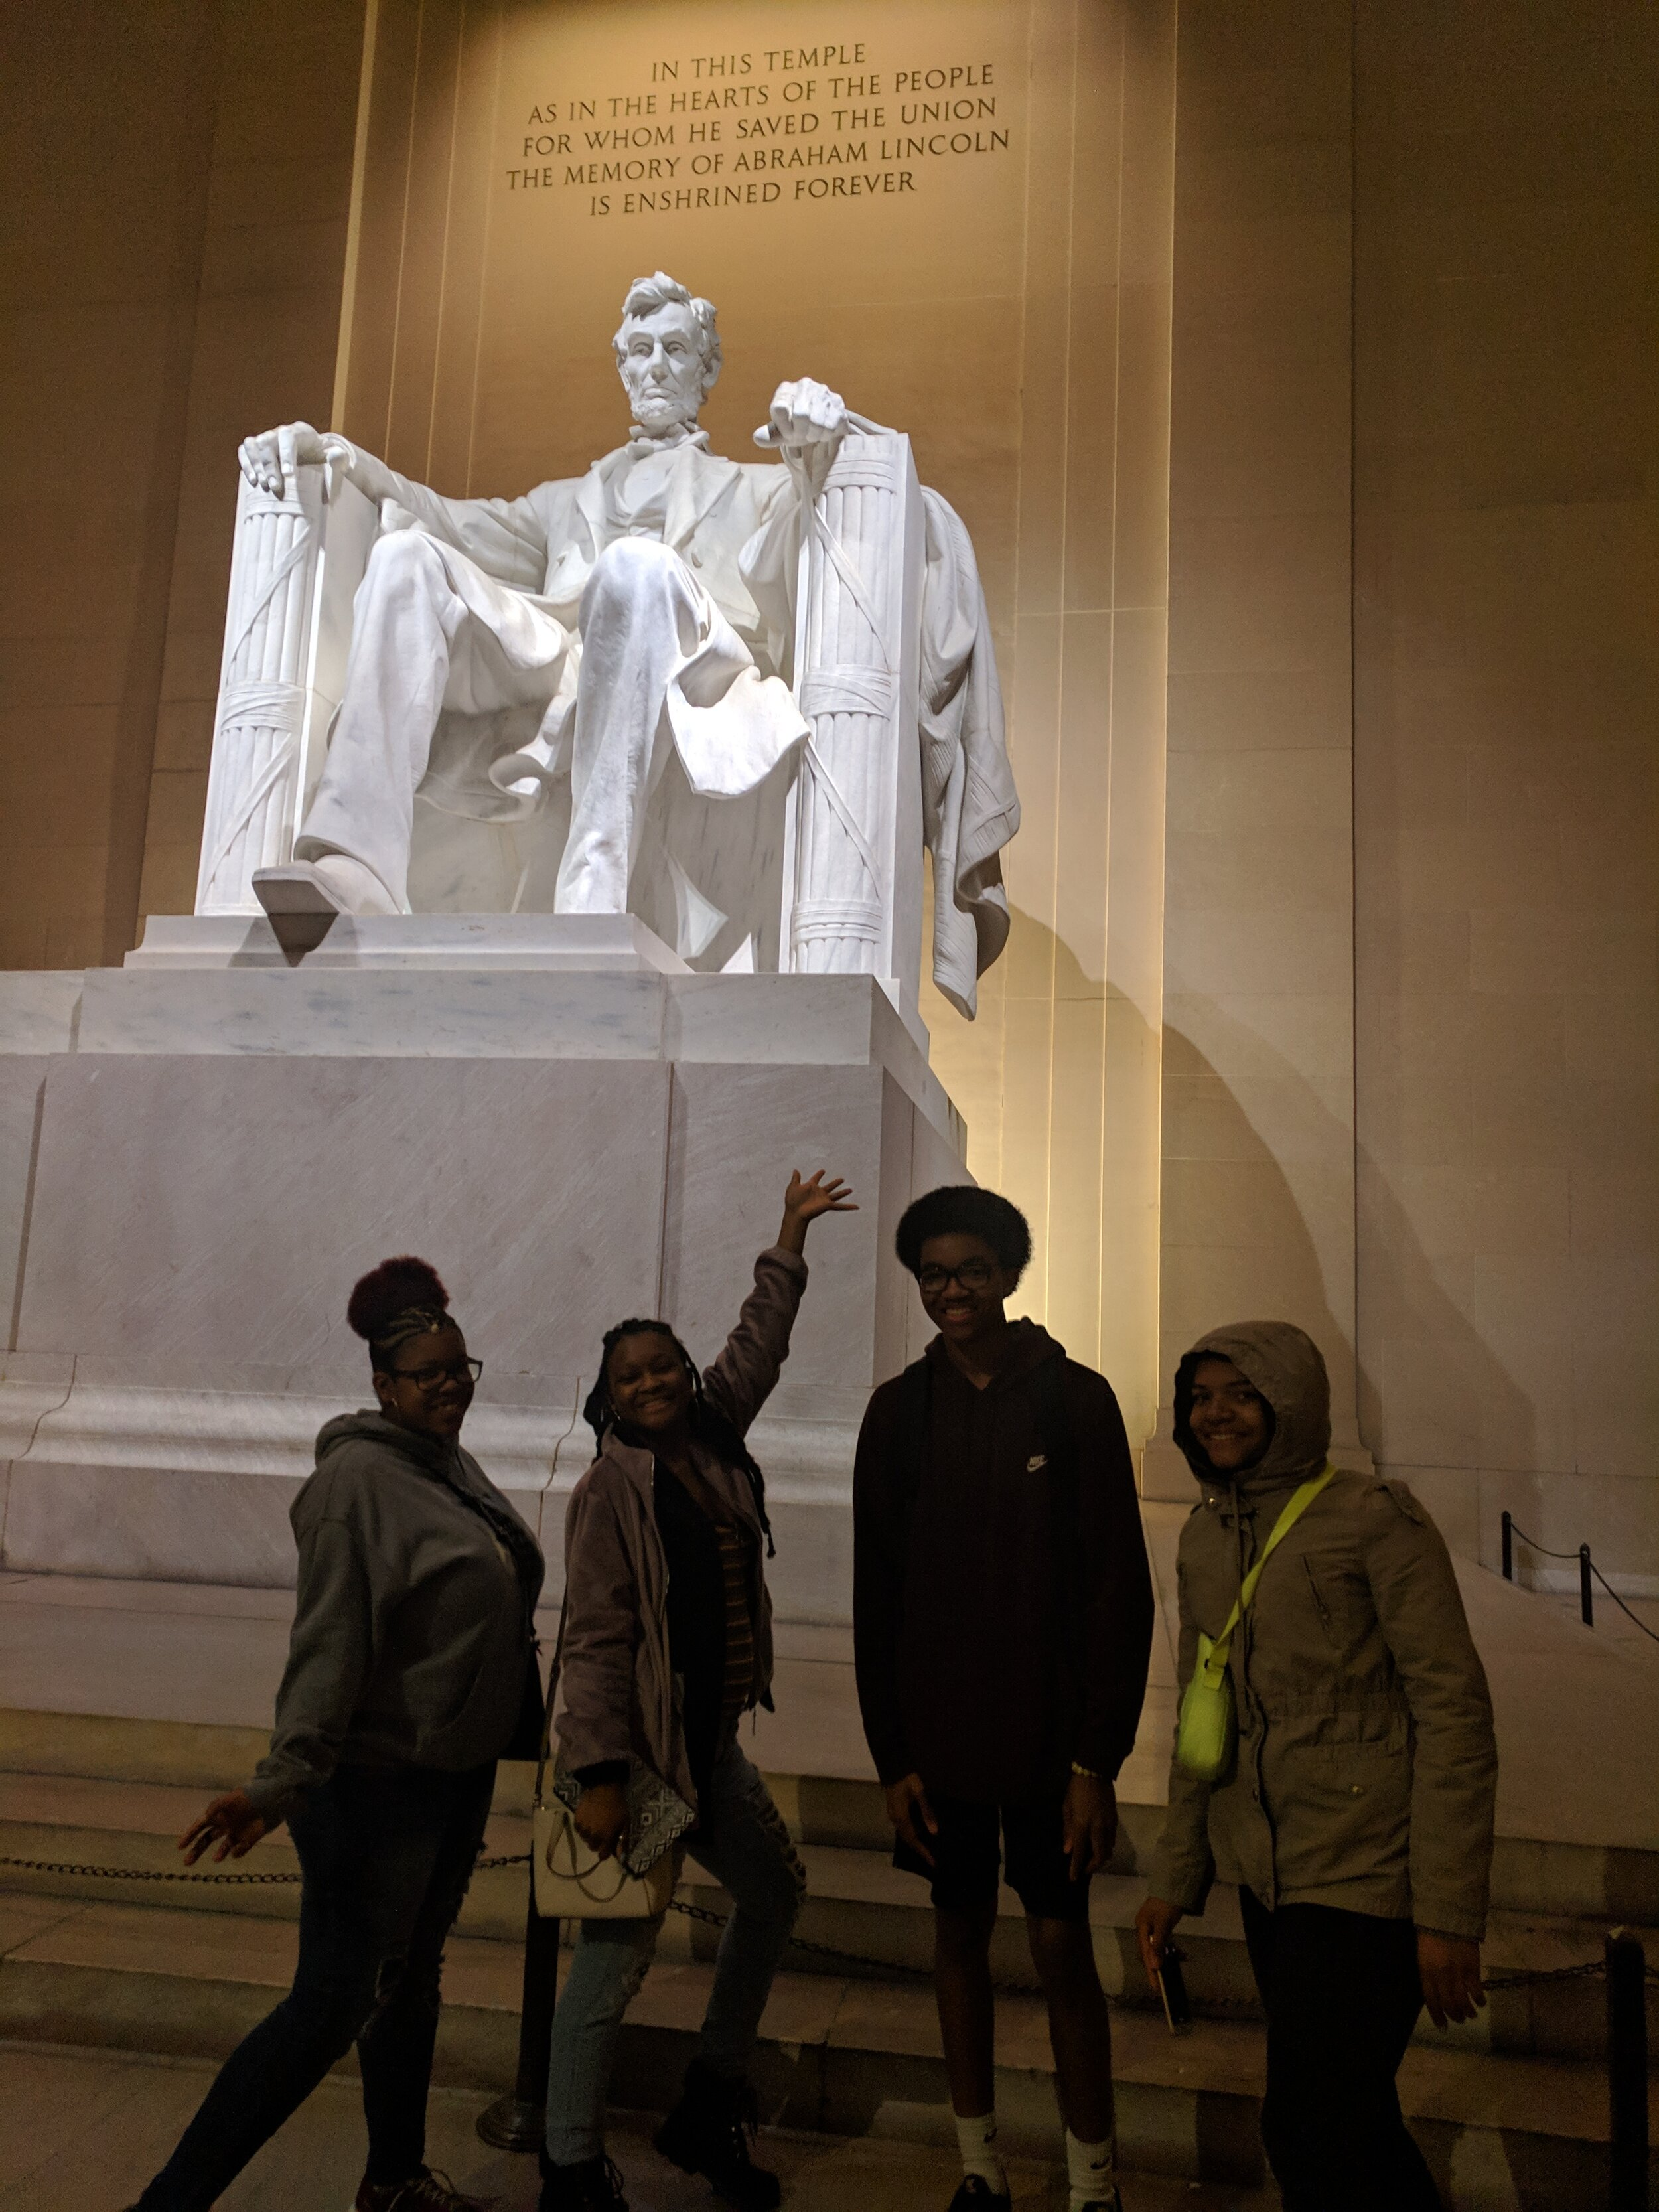 Grand Prize Winners 2018-2019 enjoying the DC Night Monument tour at the Lincoln Memorial.